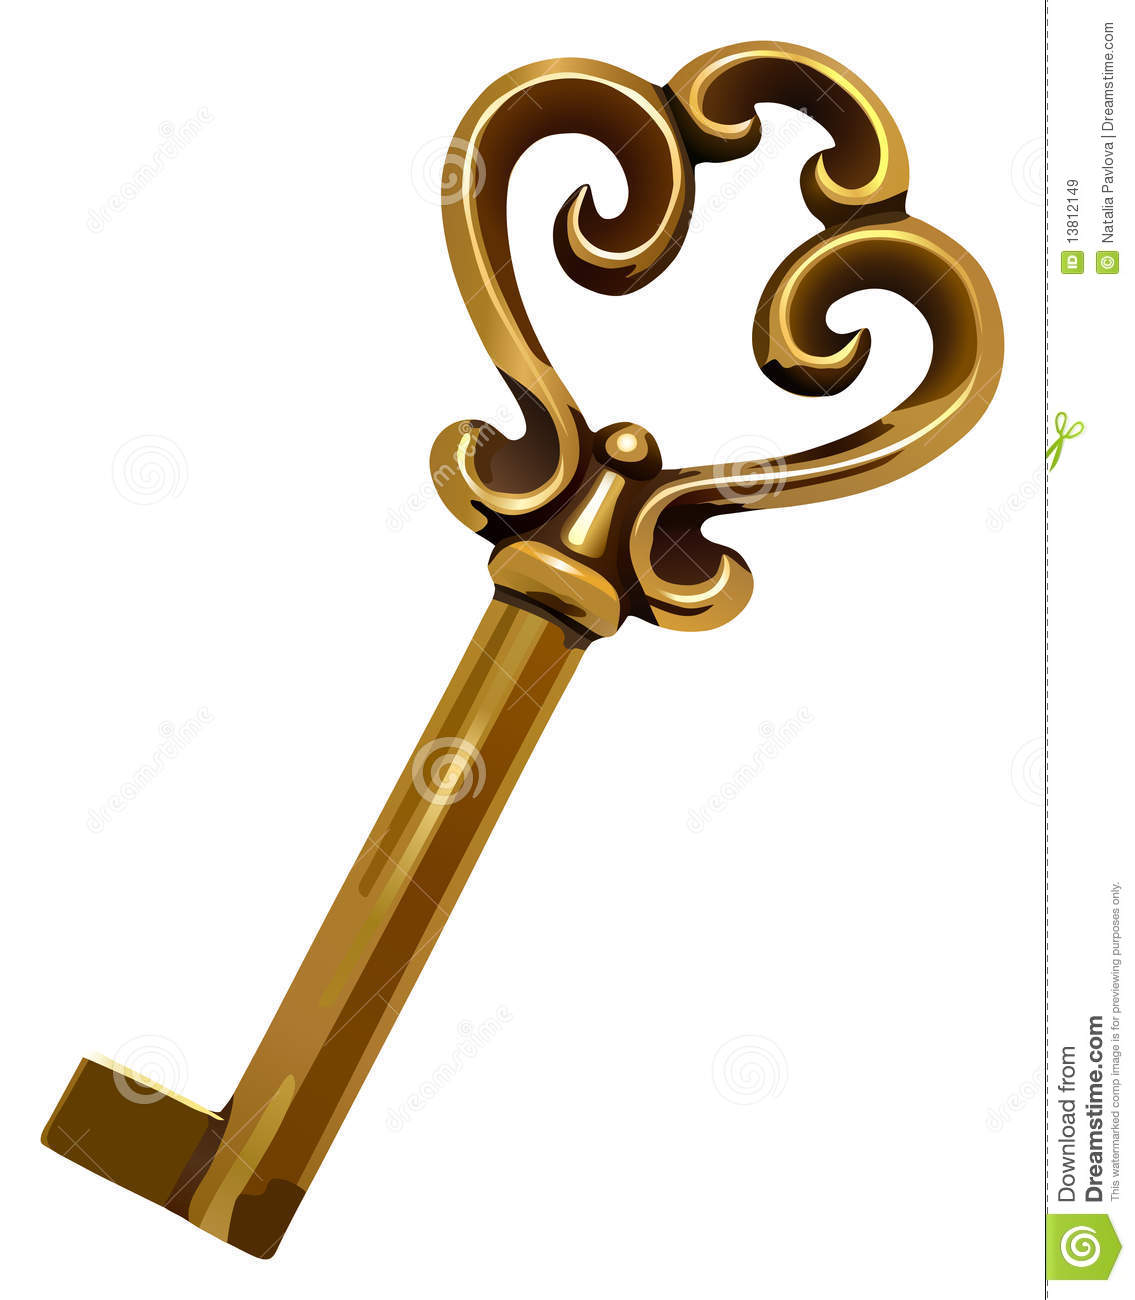 Old Key Royalty Free Stock Images - Image: 13812149